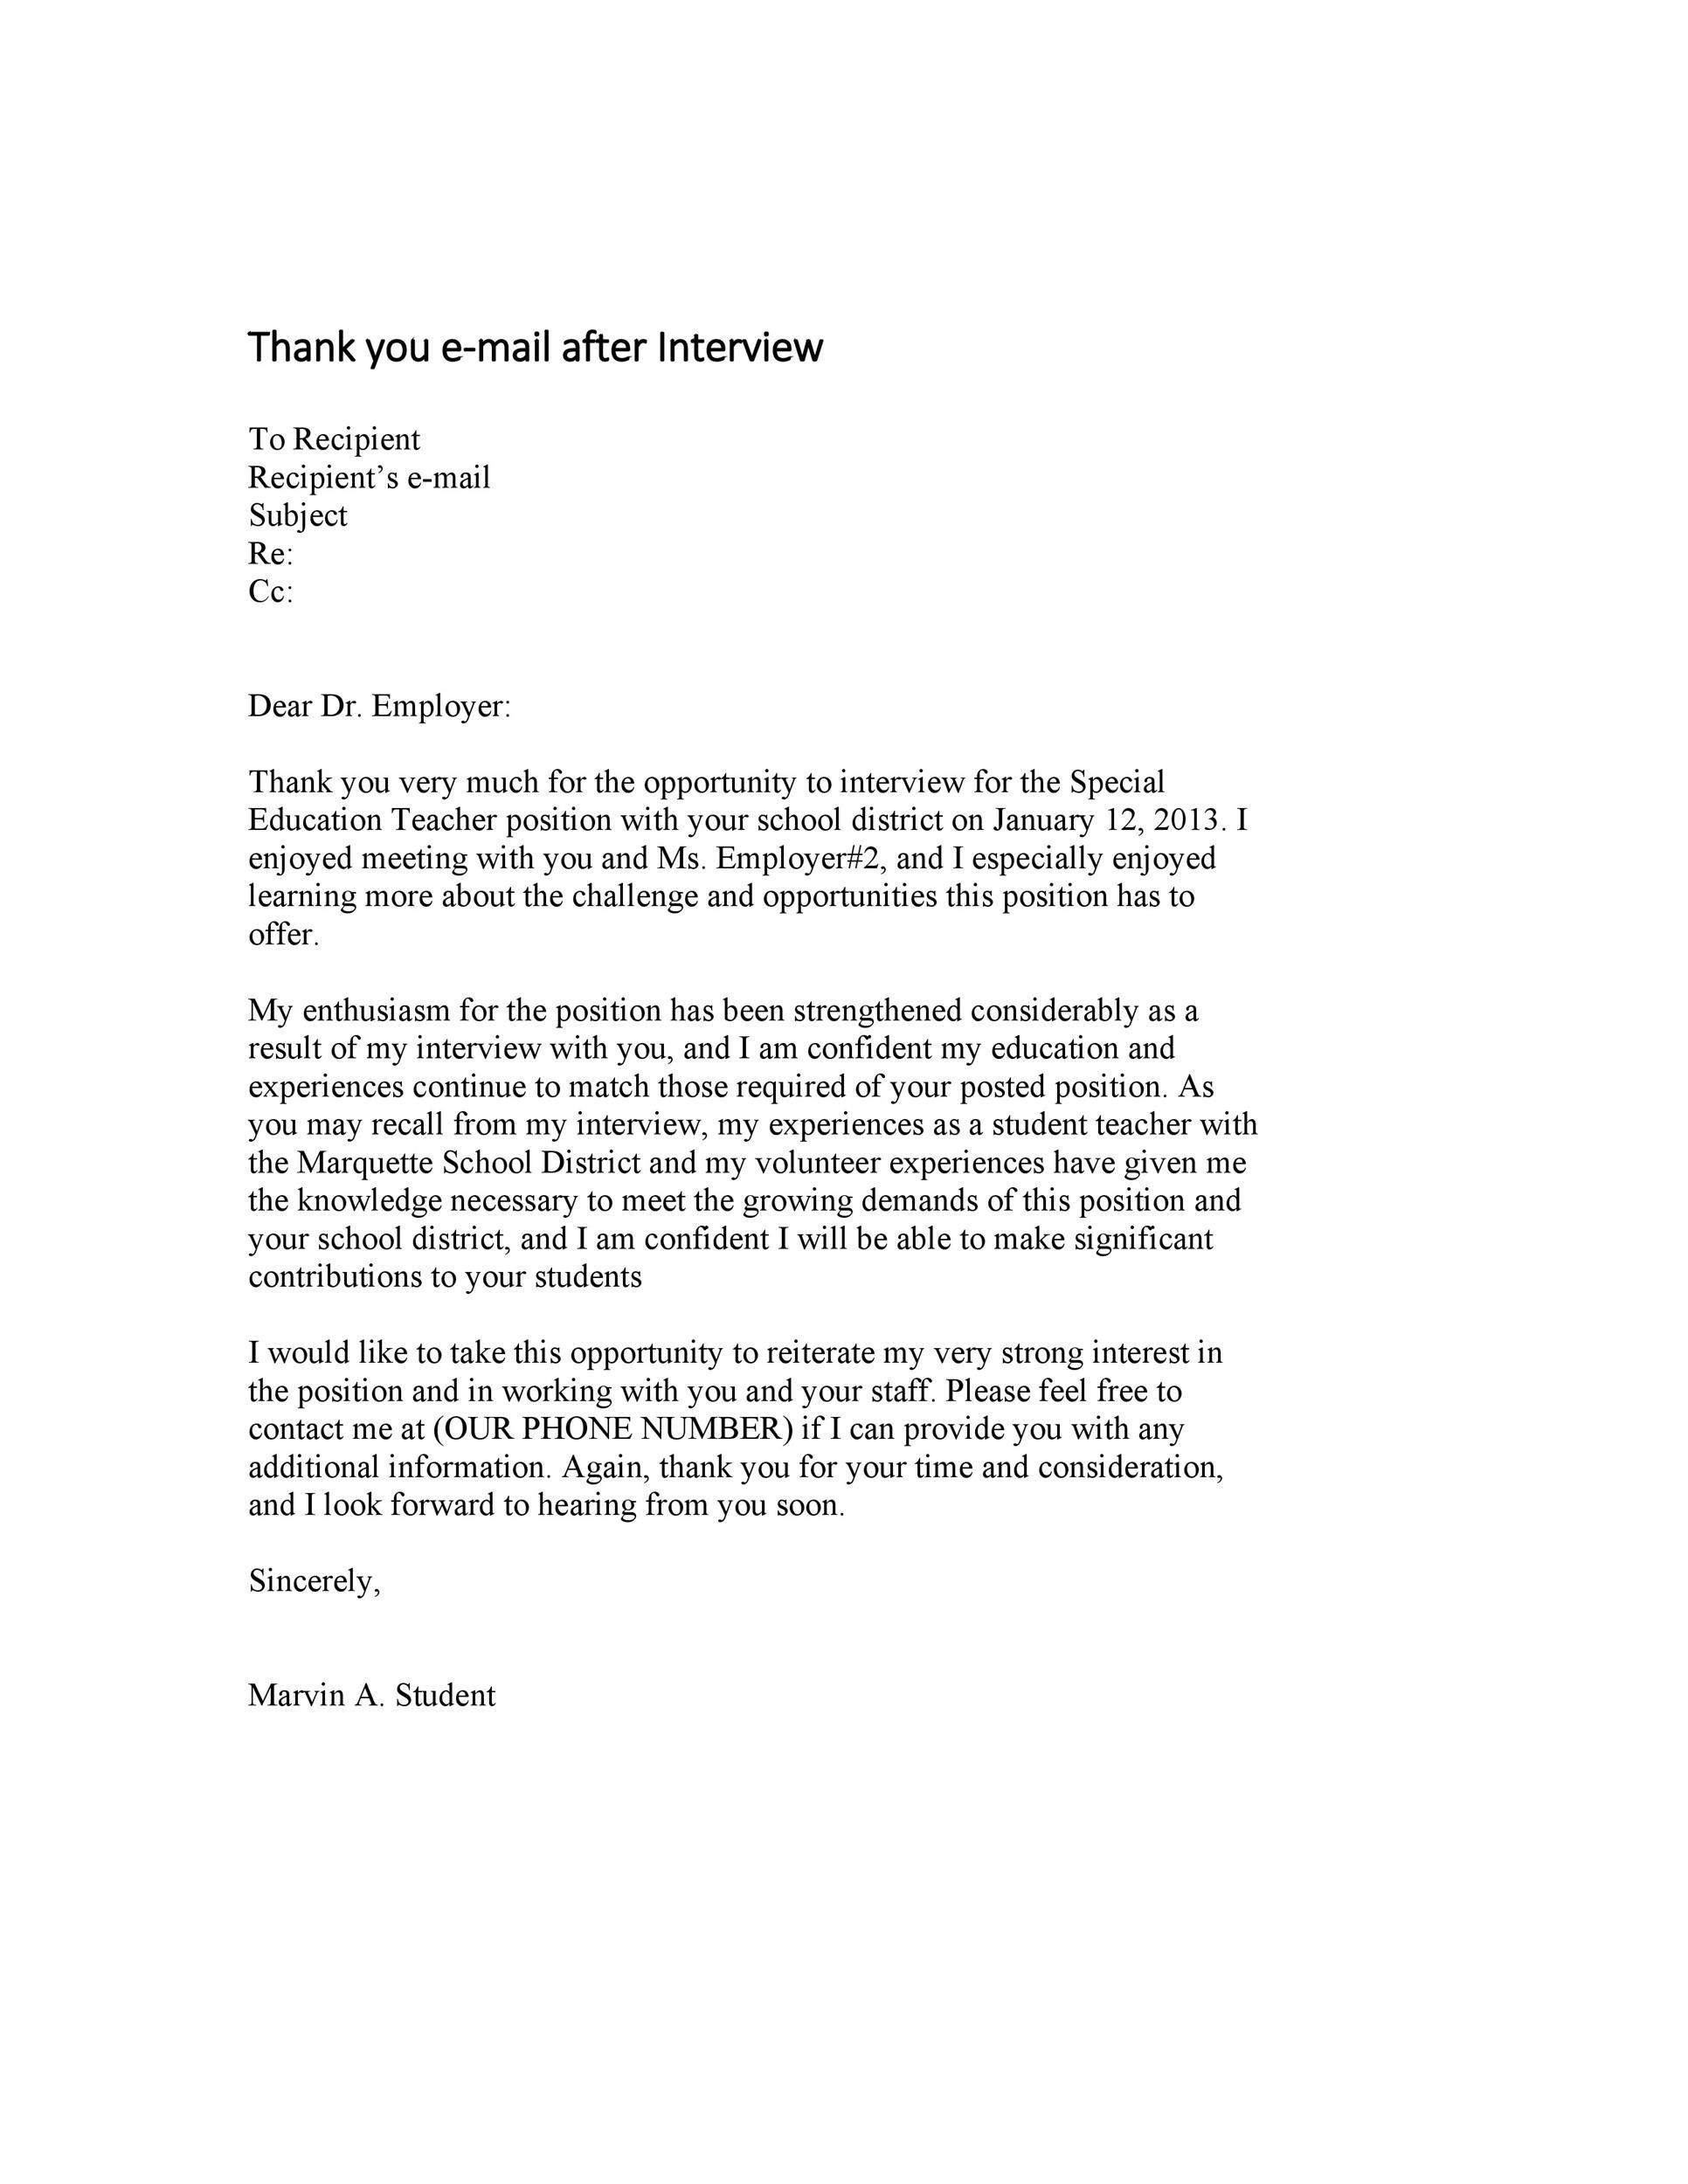 Free Thank you e-mail after Interview Template 34